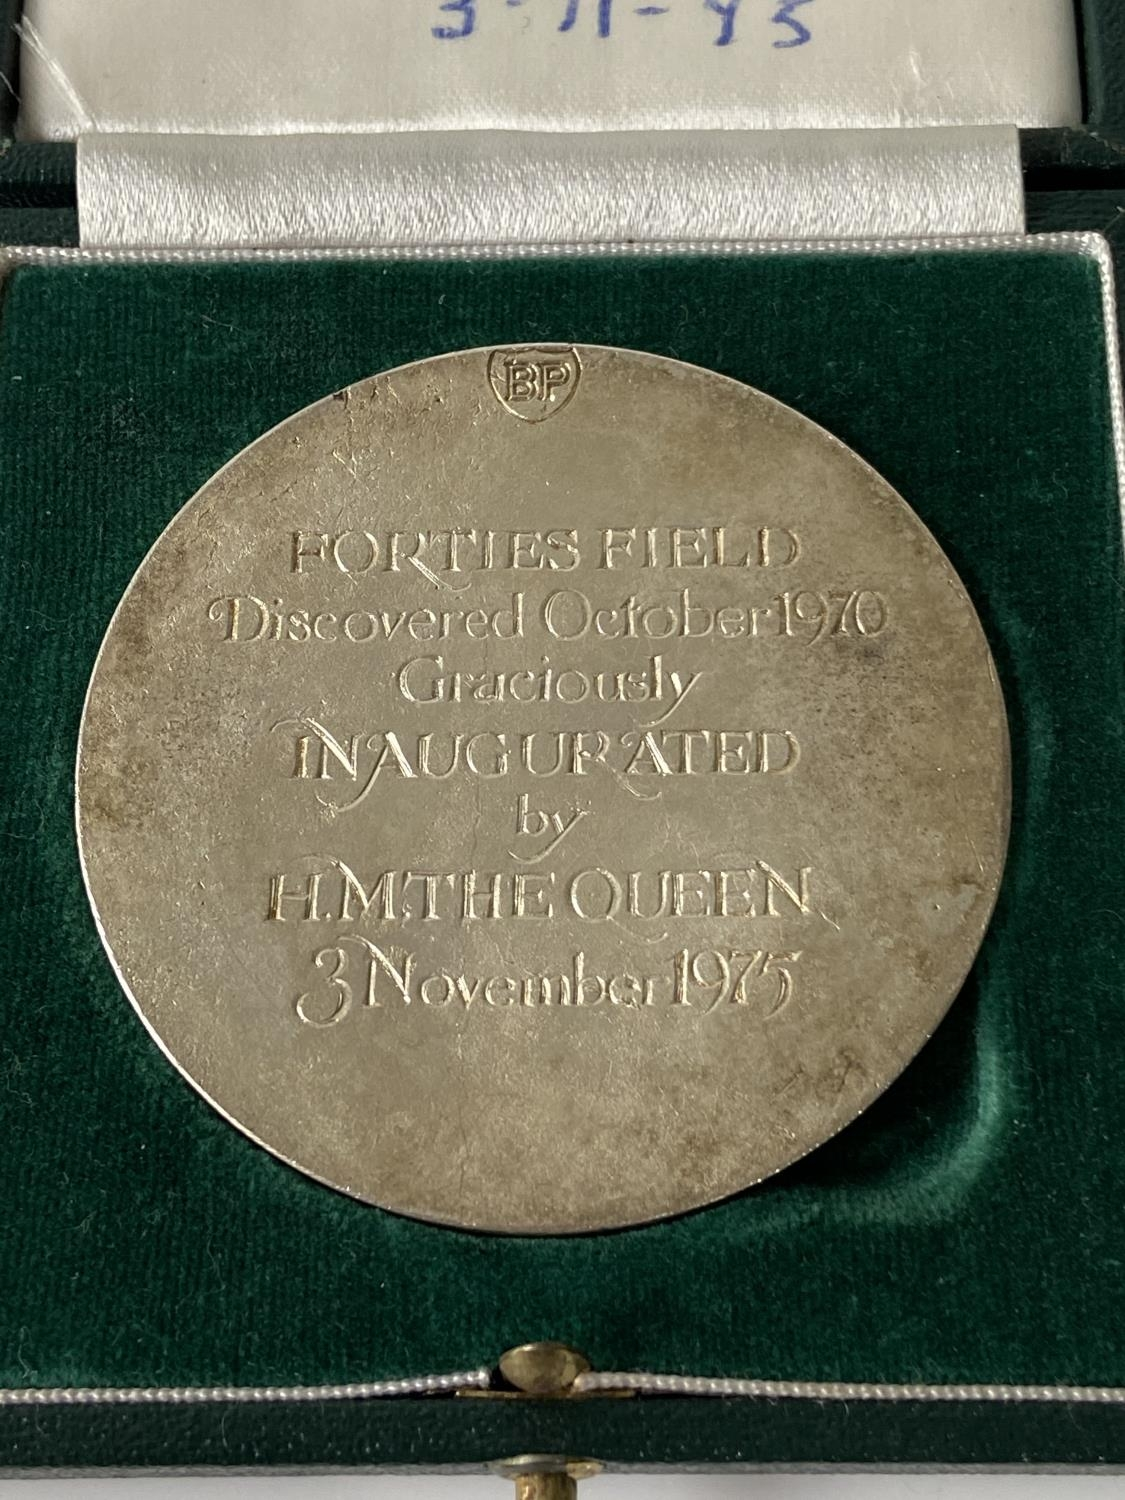 A 1975 commemorative medal for BP Forties Field oil field opening, comes with case, [diameter 6cm] - Image 4 of 6